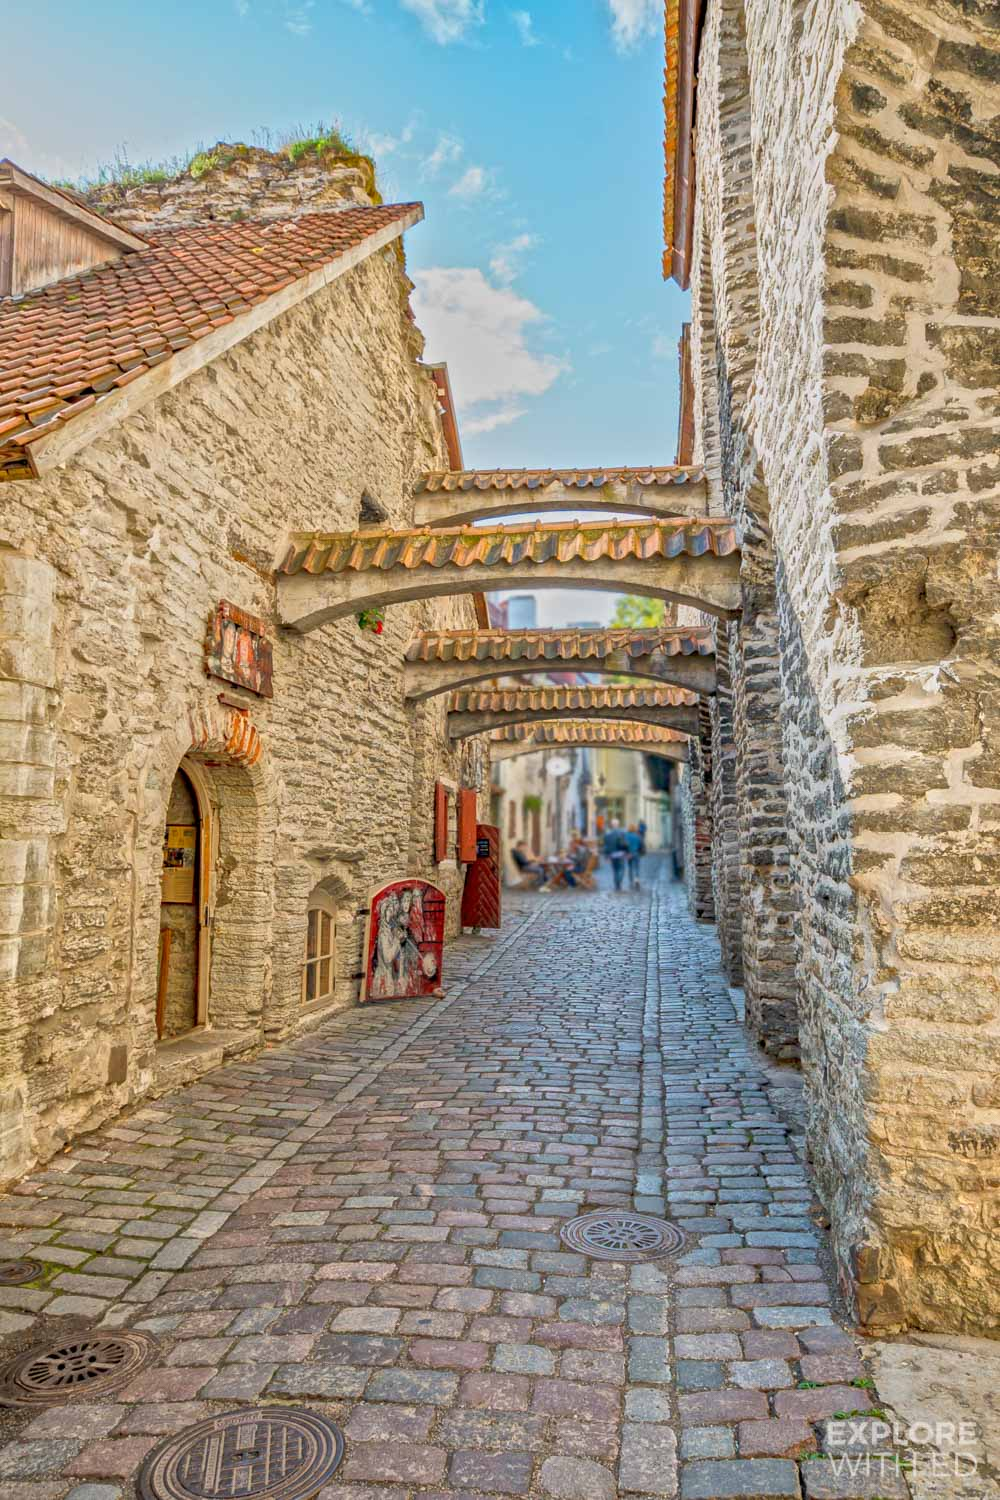 St. Catherine's Passage in Tallinn, one of the best preserved places in Tallinn for photography lovers